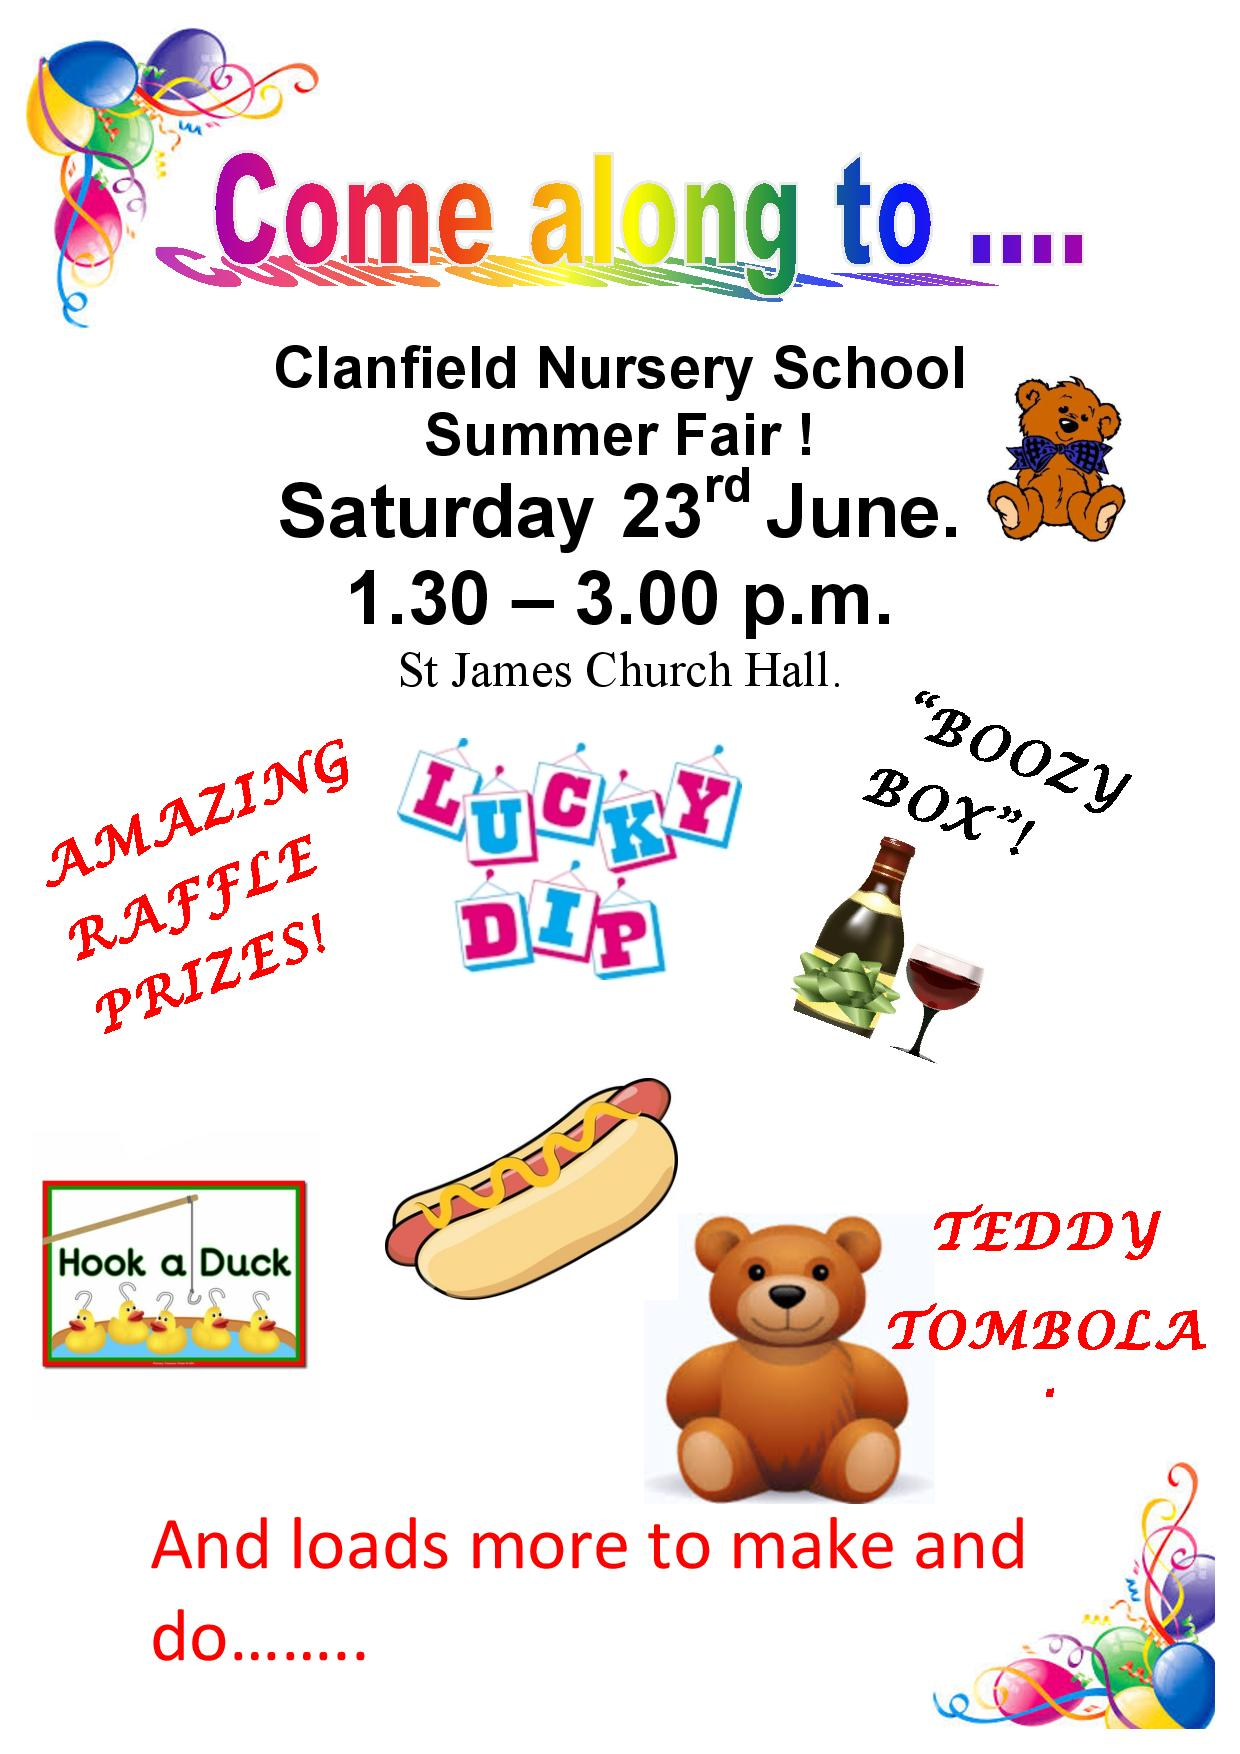 Clanfield Nursery School Summer Fair